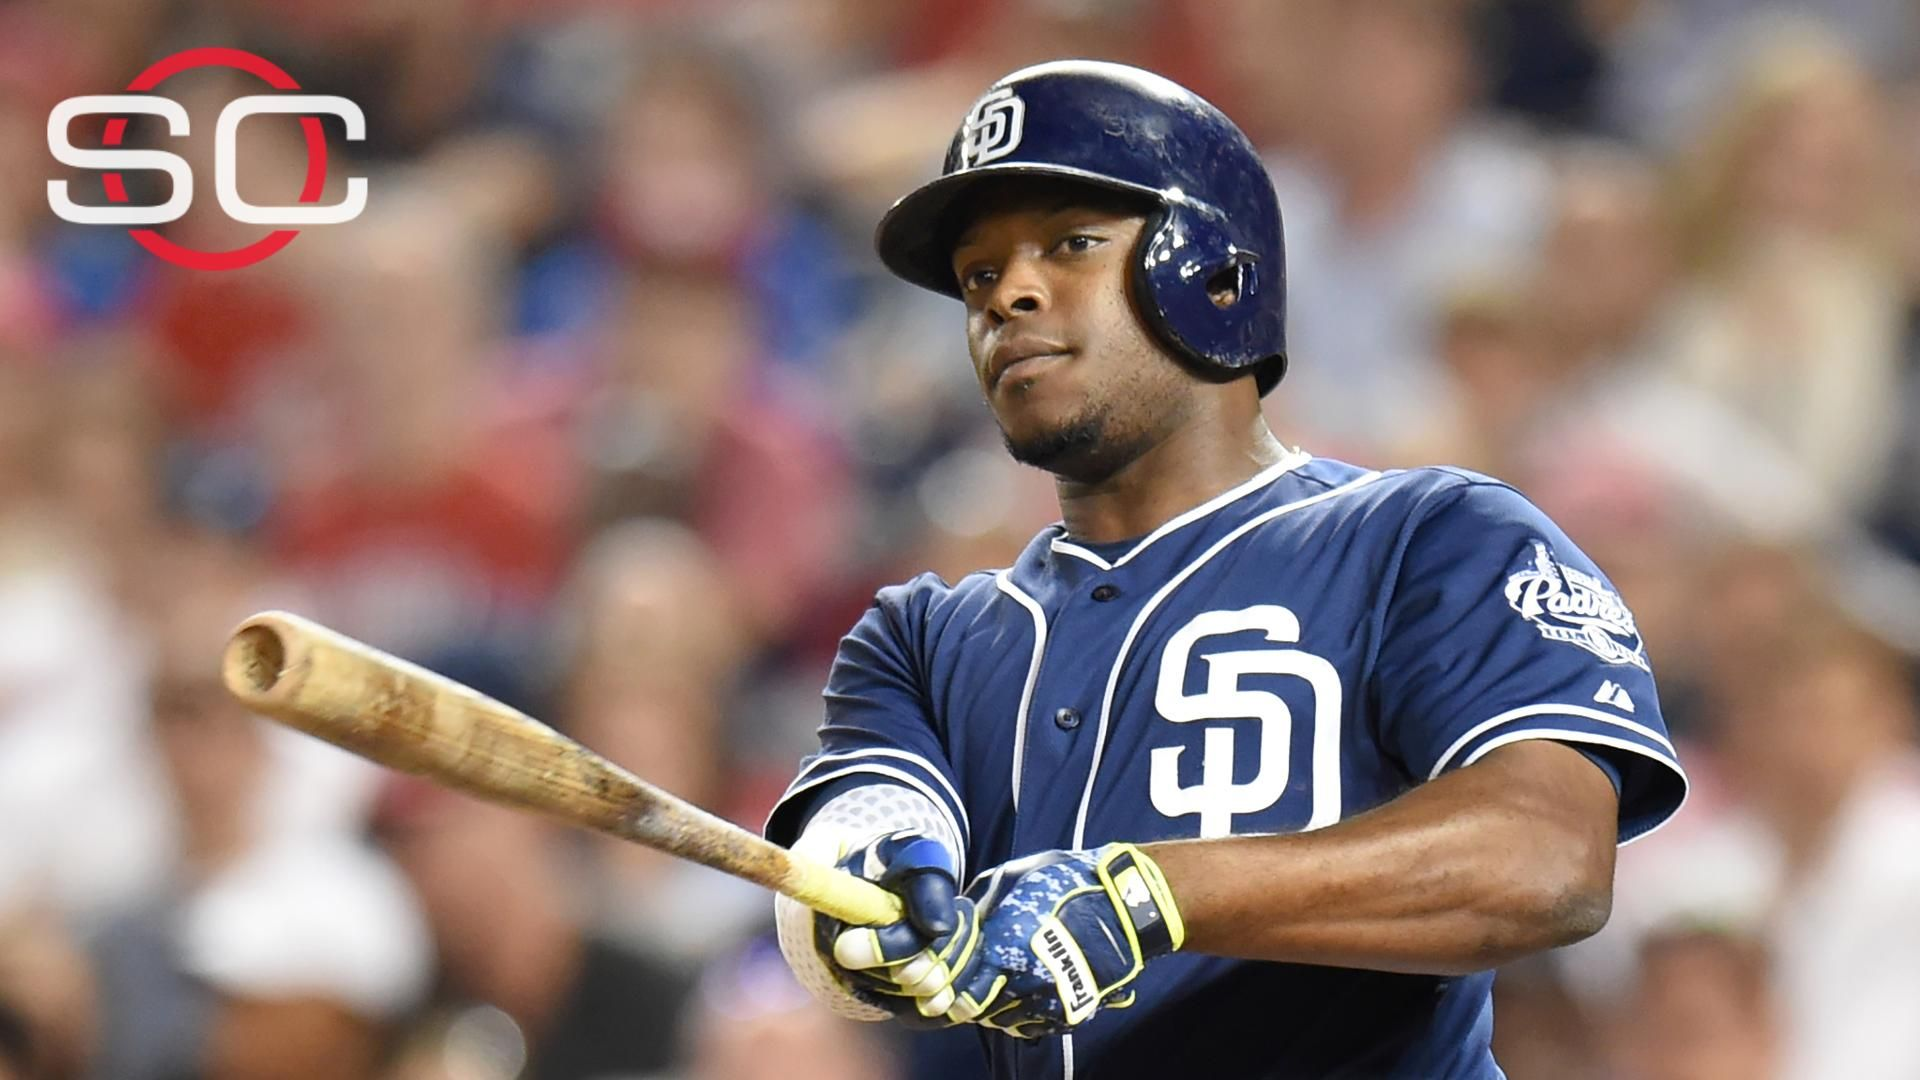 Tigers continue go-for-it mentality by signing Justin Upton